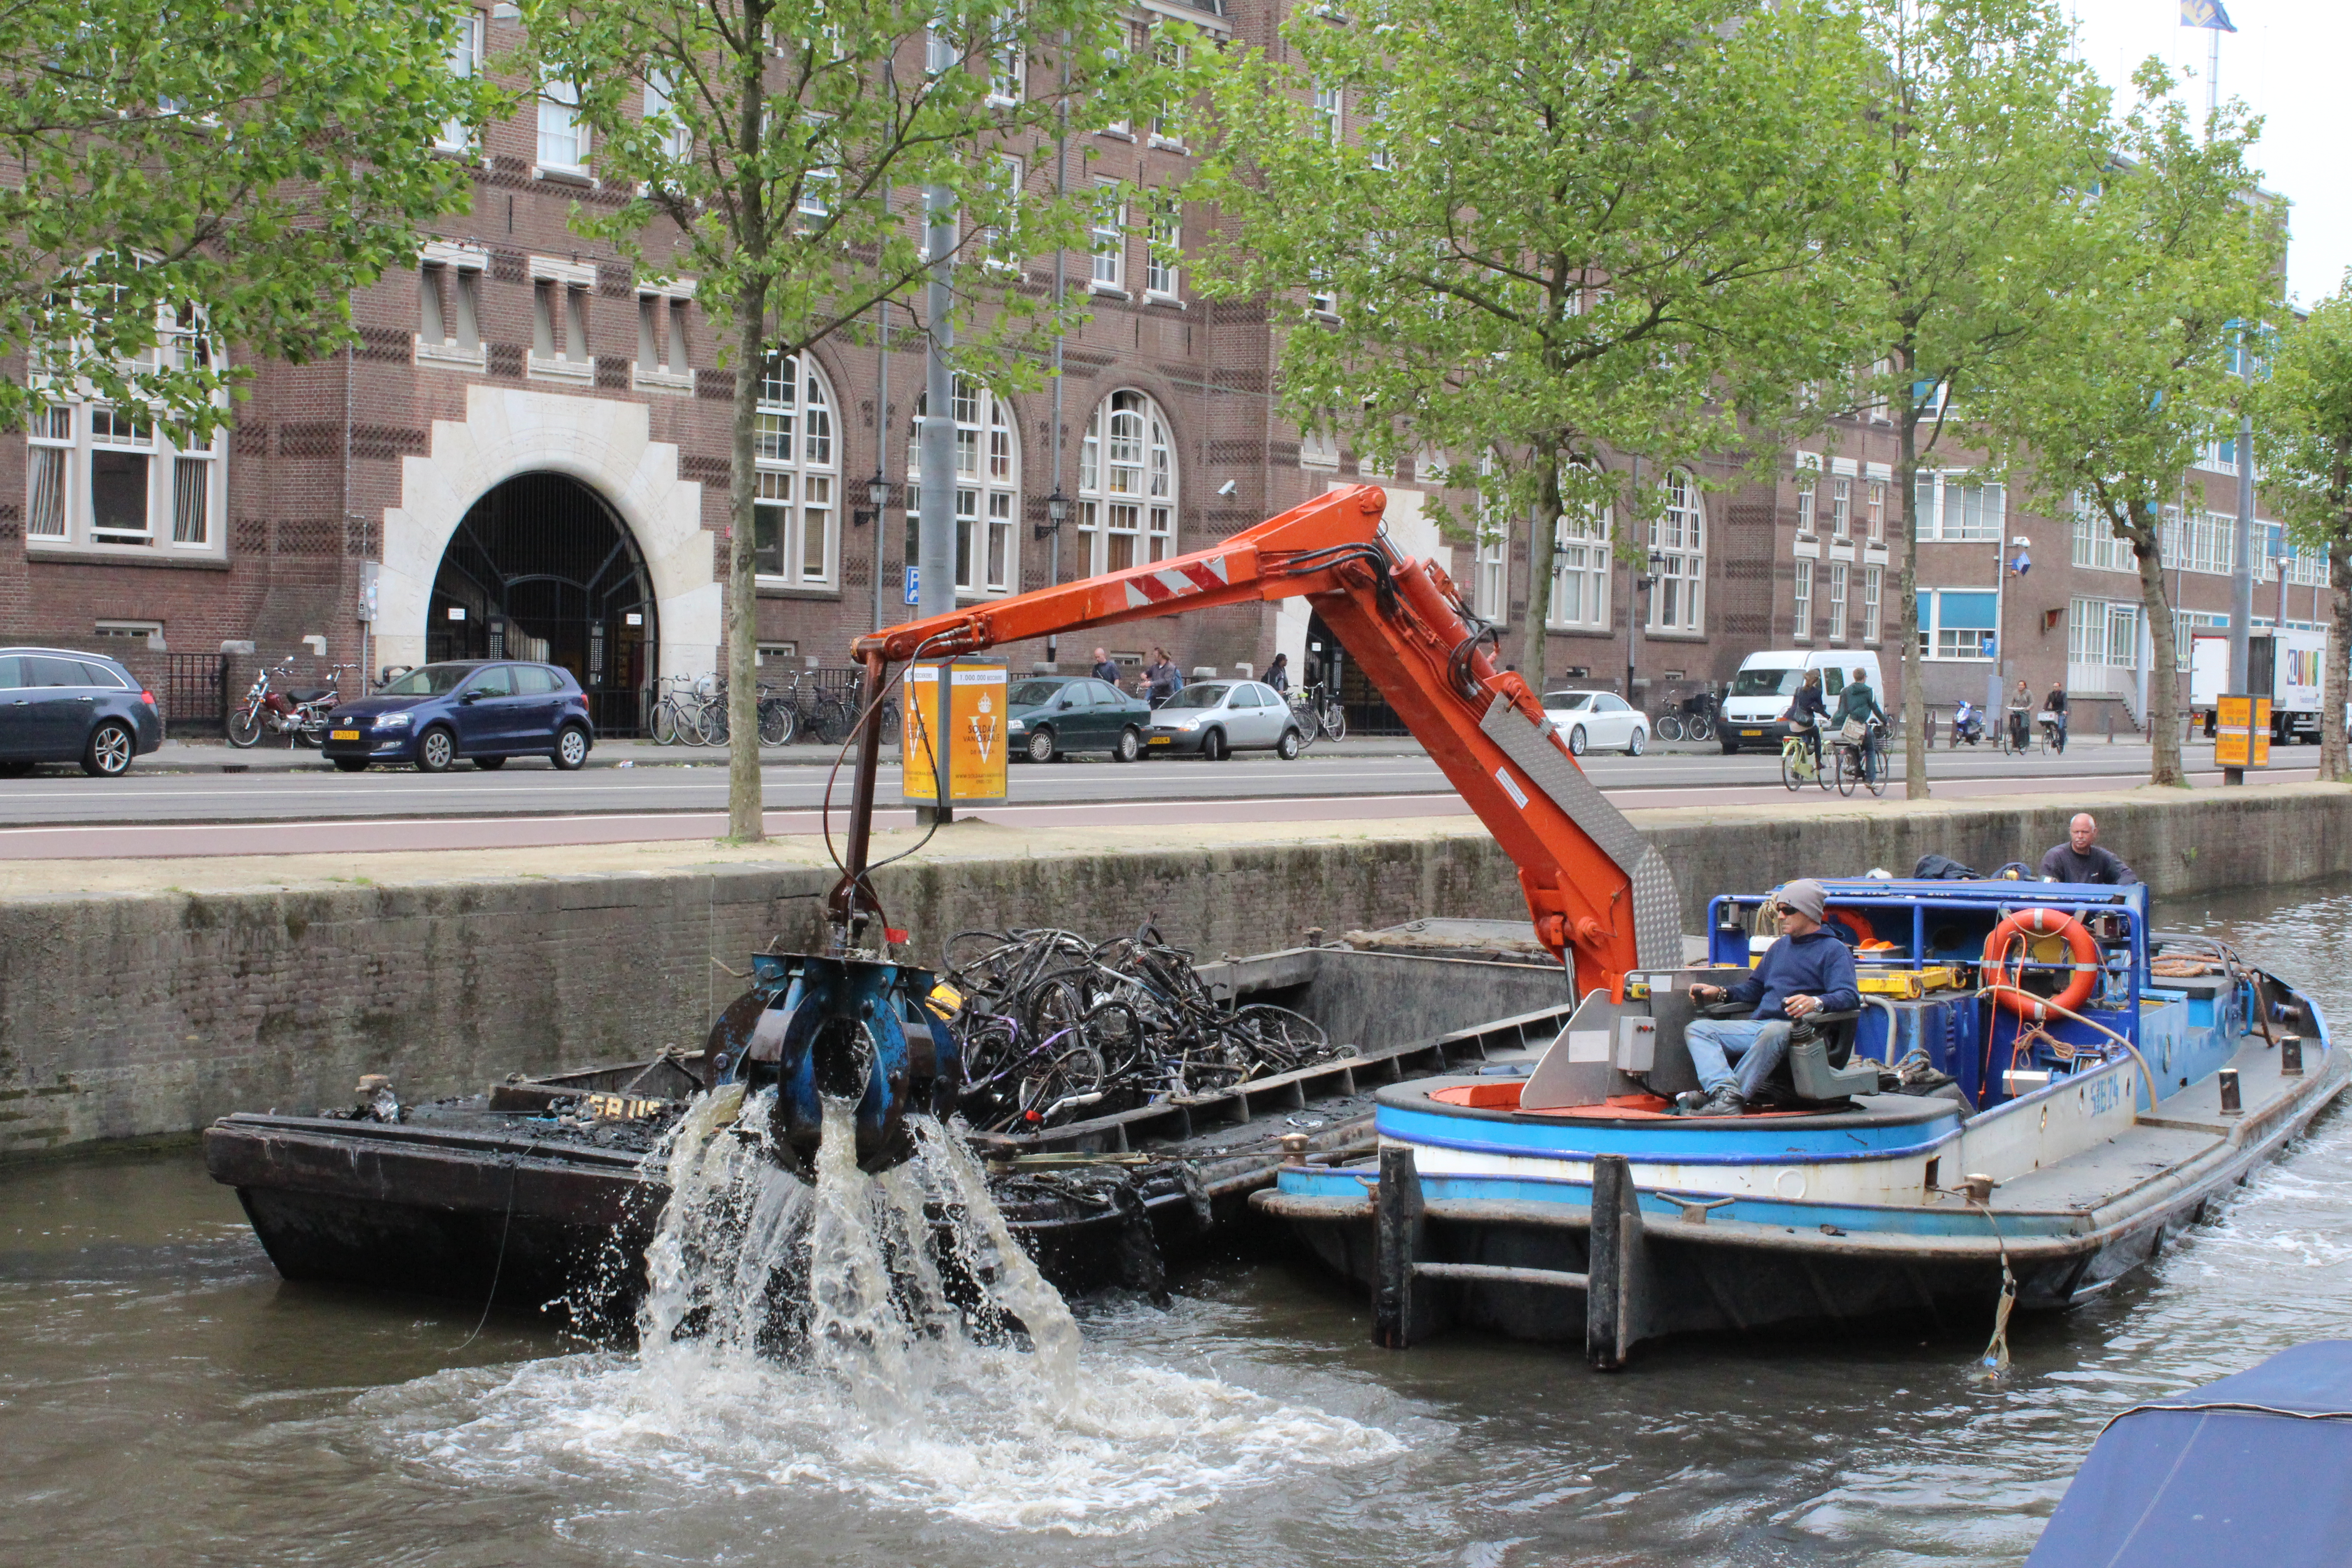 13 FUN FACTS ABOUT BICYCLES IN AMSTERDAM